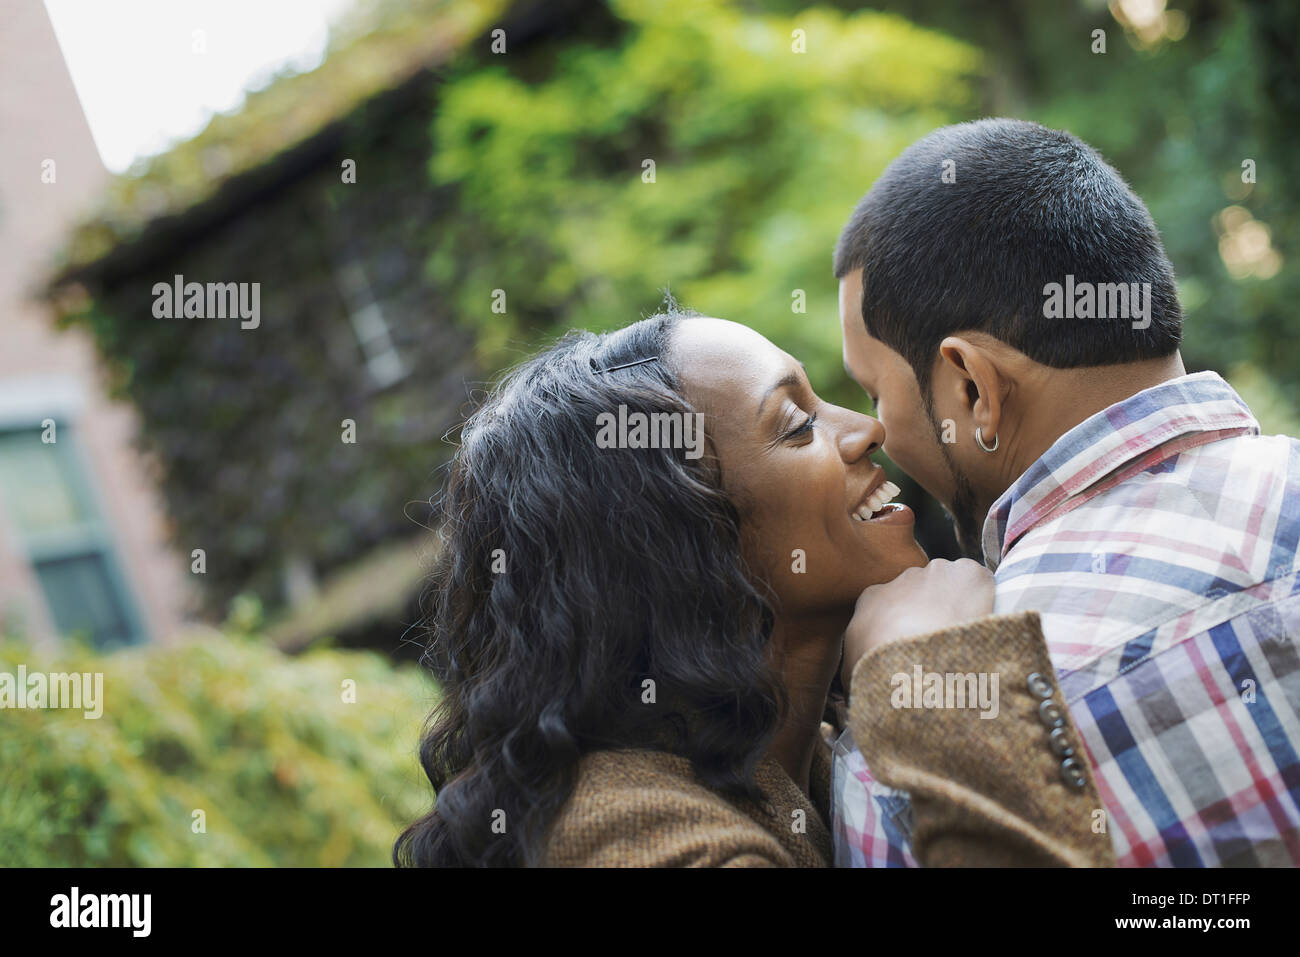 Scenes from urban life in New York City A man and a woman a couple hugging each other - Stock Image